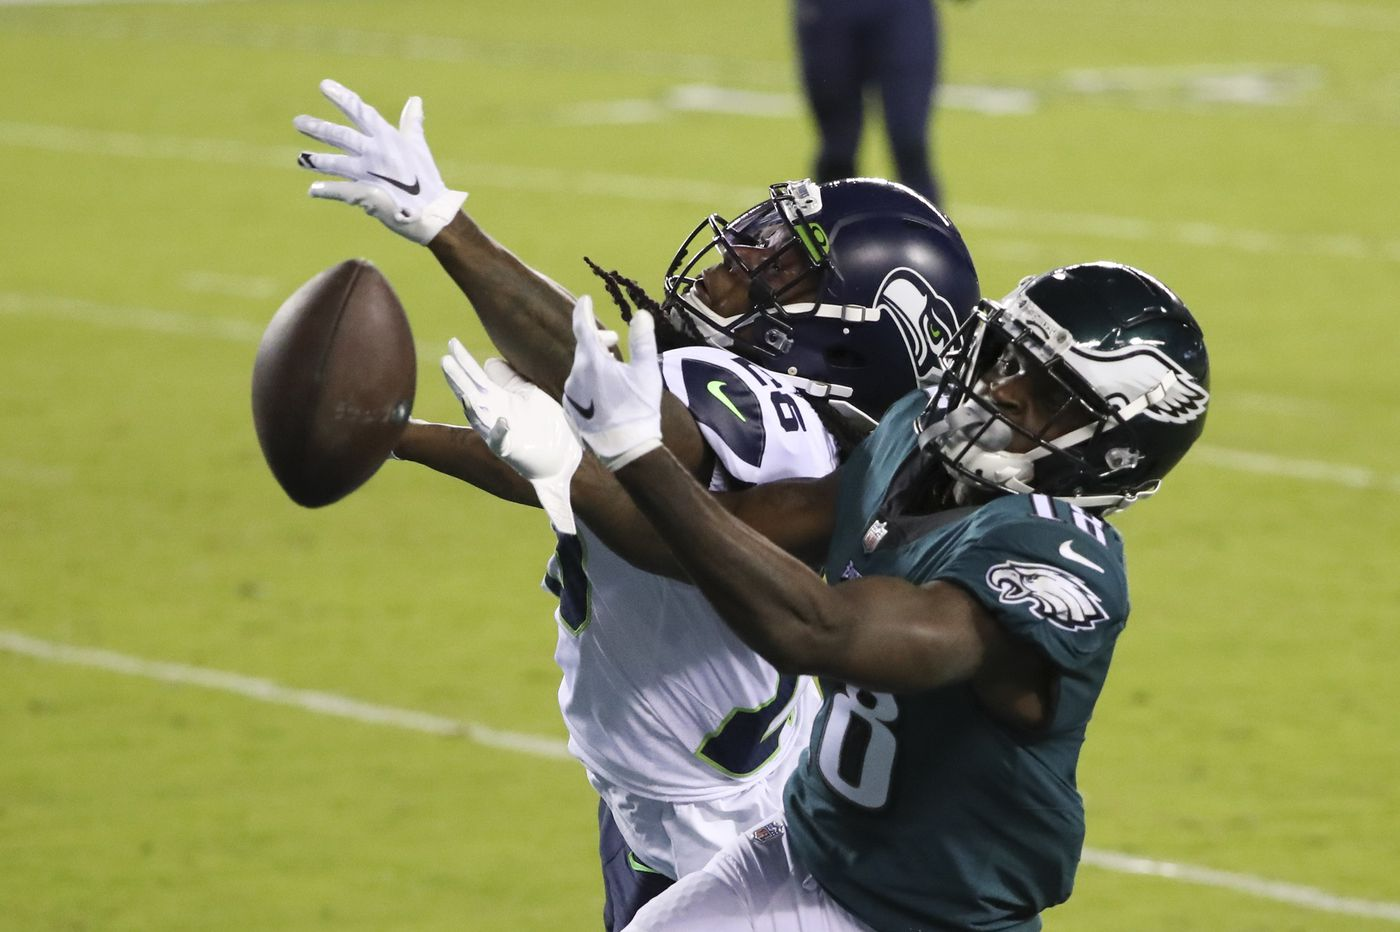 Eagles-Seahawks Up-Down Drill: Jalen Reagor still struggling downfield